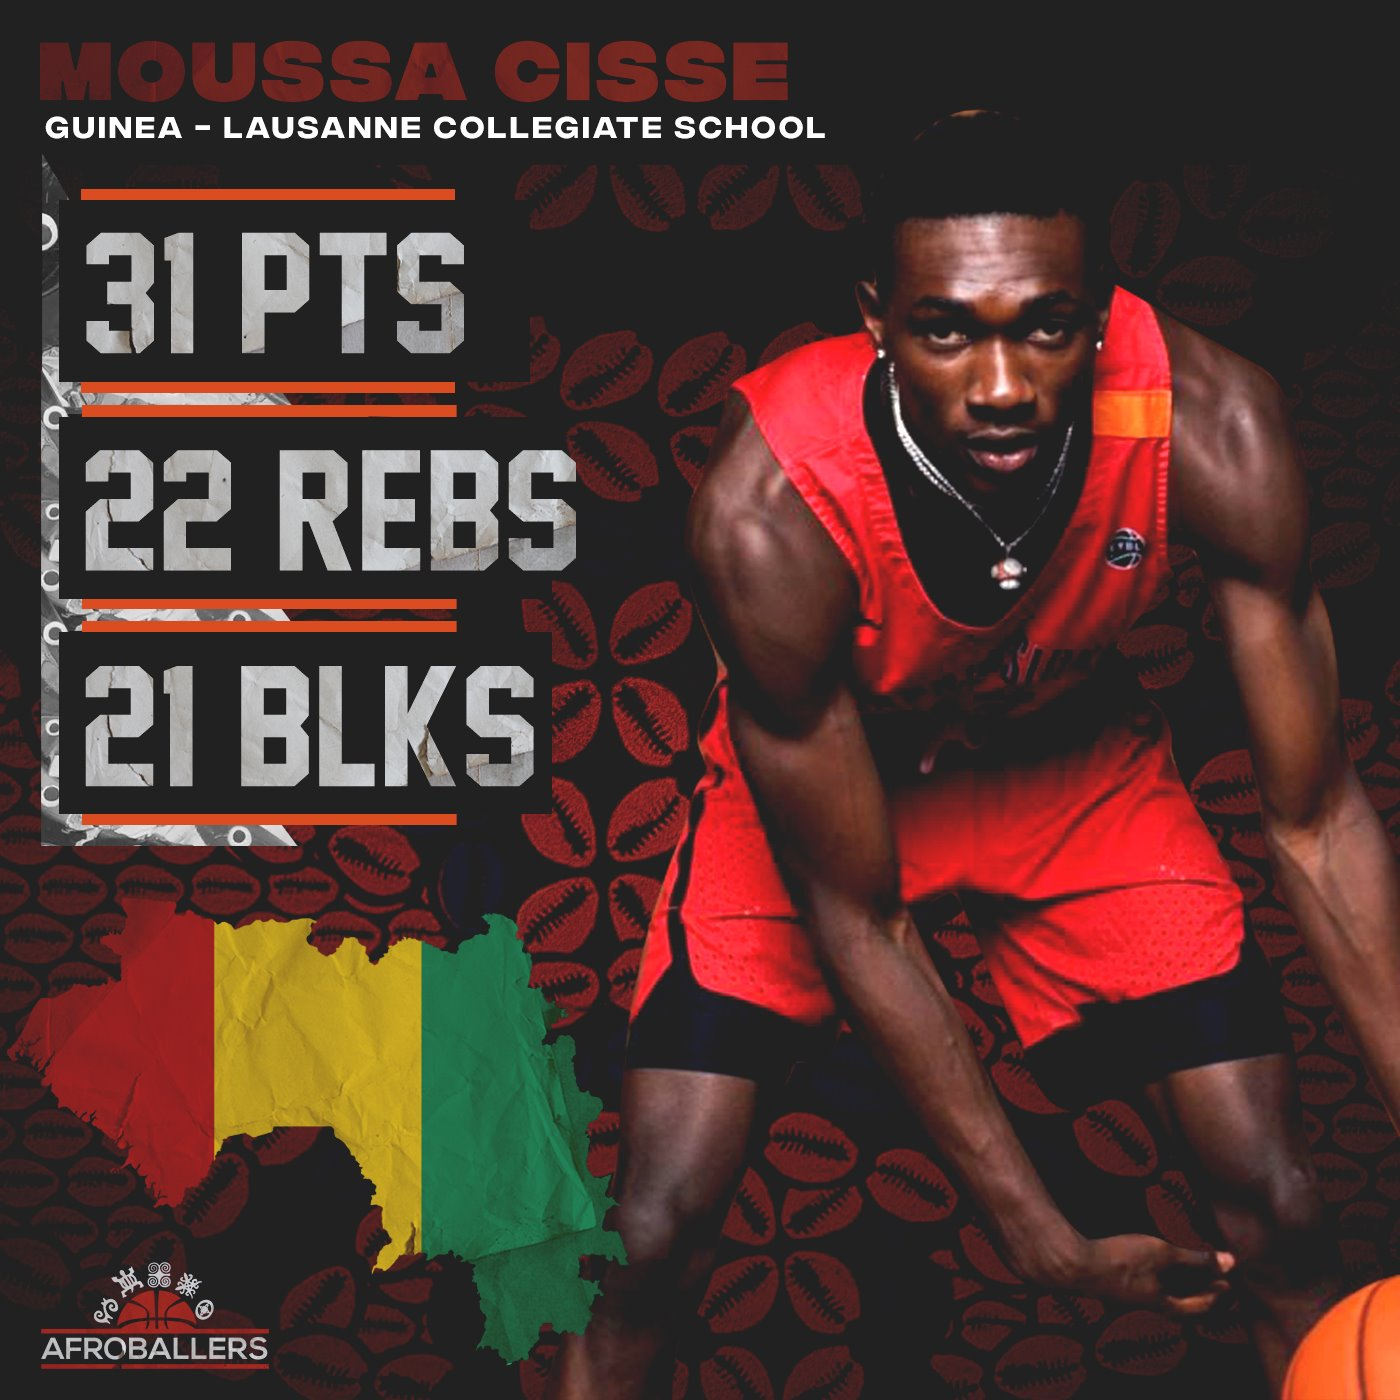 Moussa Cisse blocked 21 shots in 1 game! – Afroballers